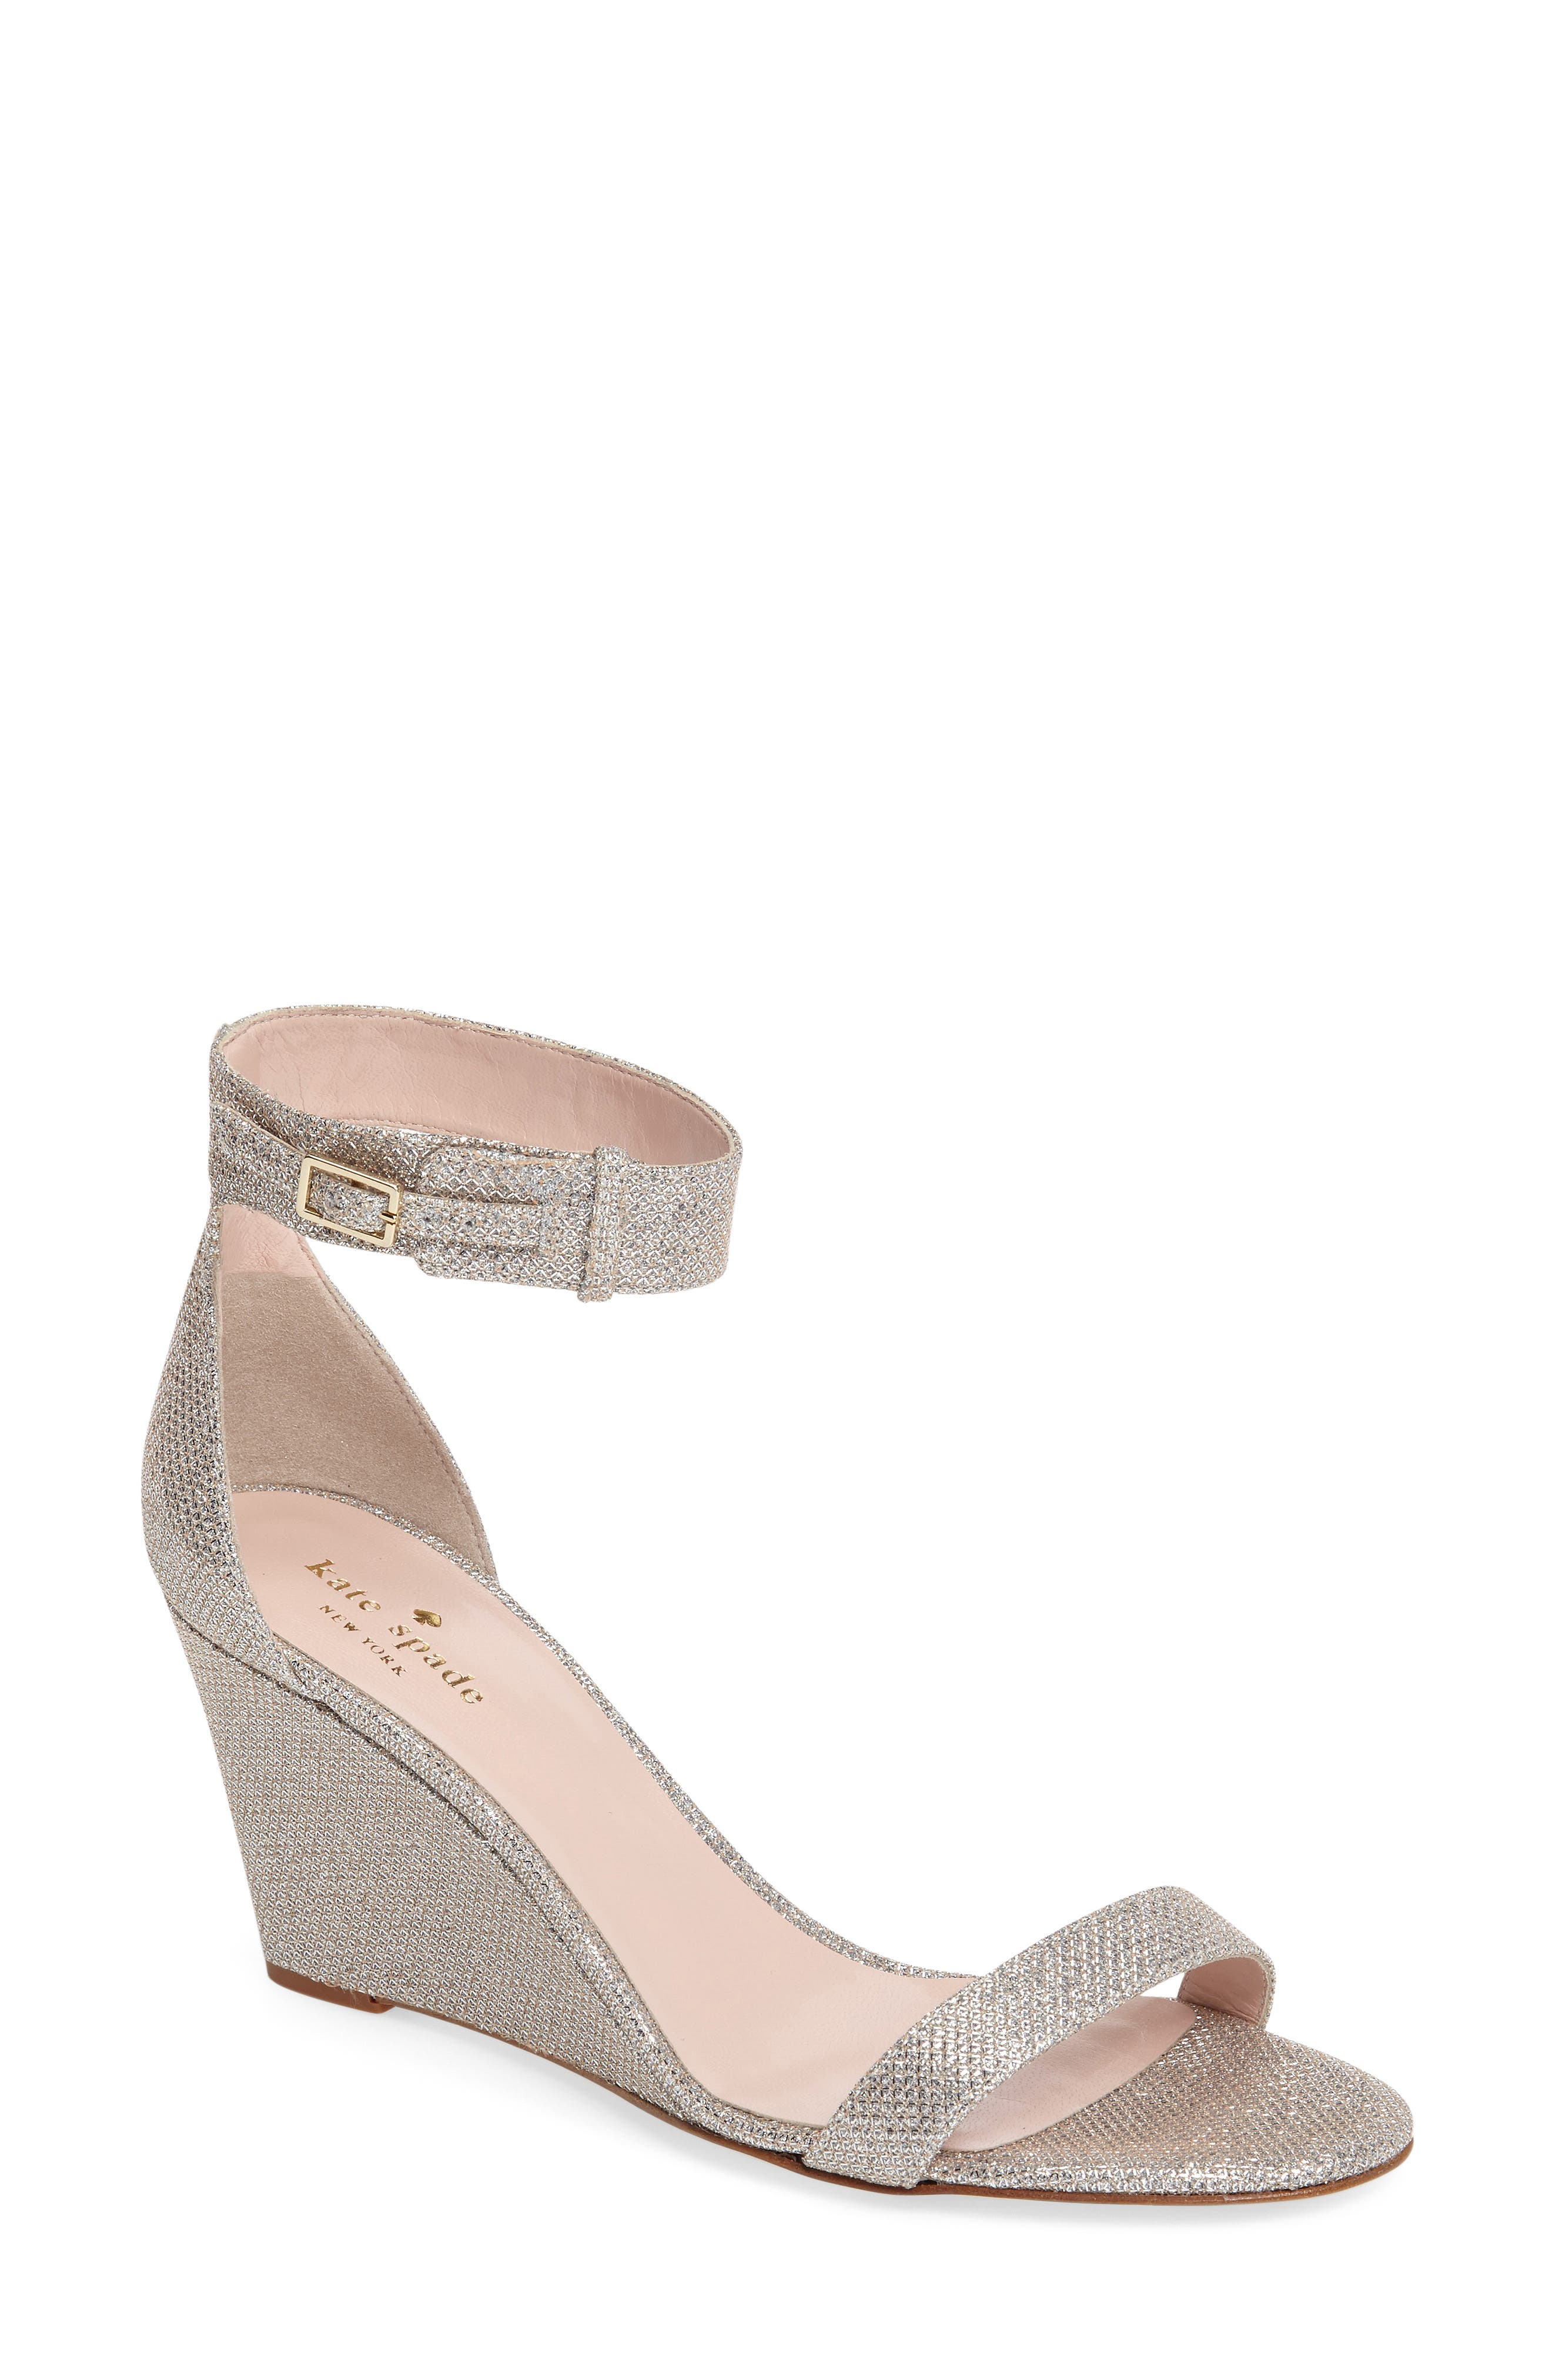 'ronia' wedge sandal,                             Main thumbnail 1, color,                             Silver/ Natural